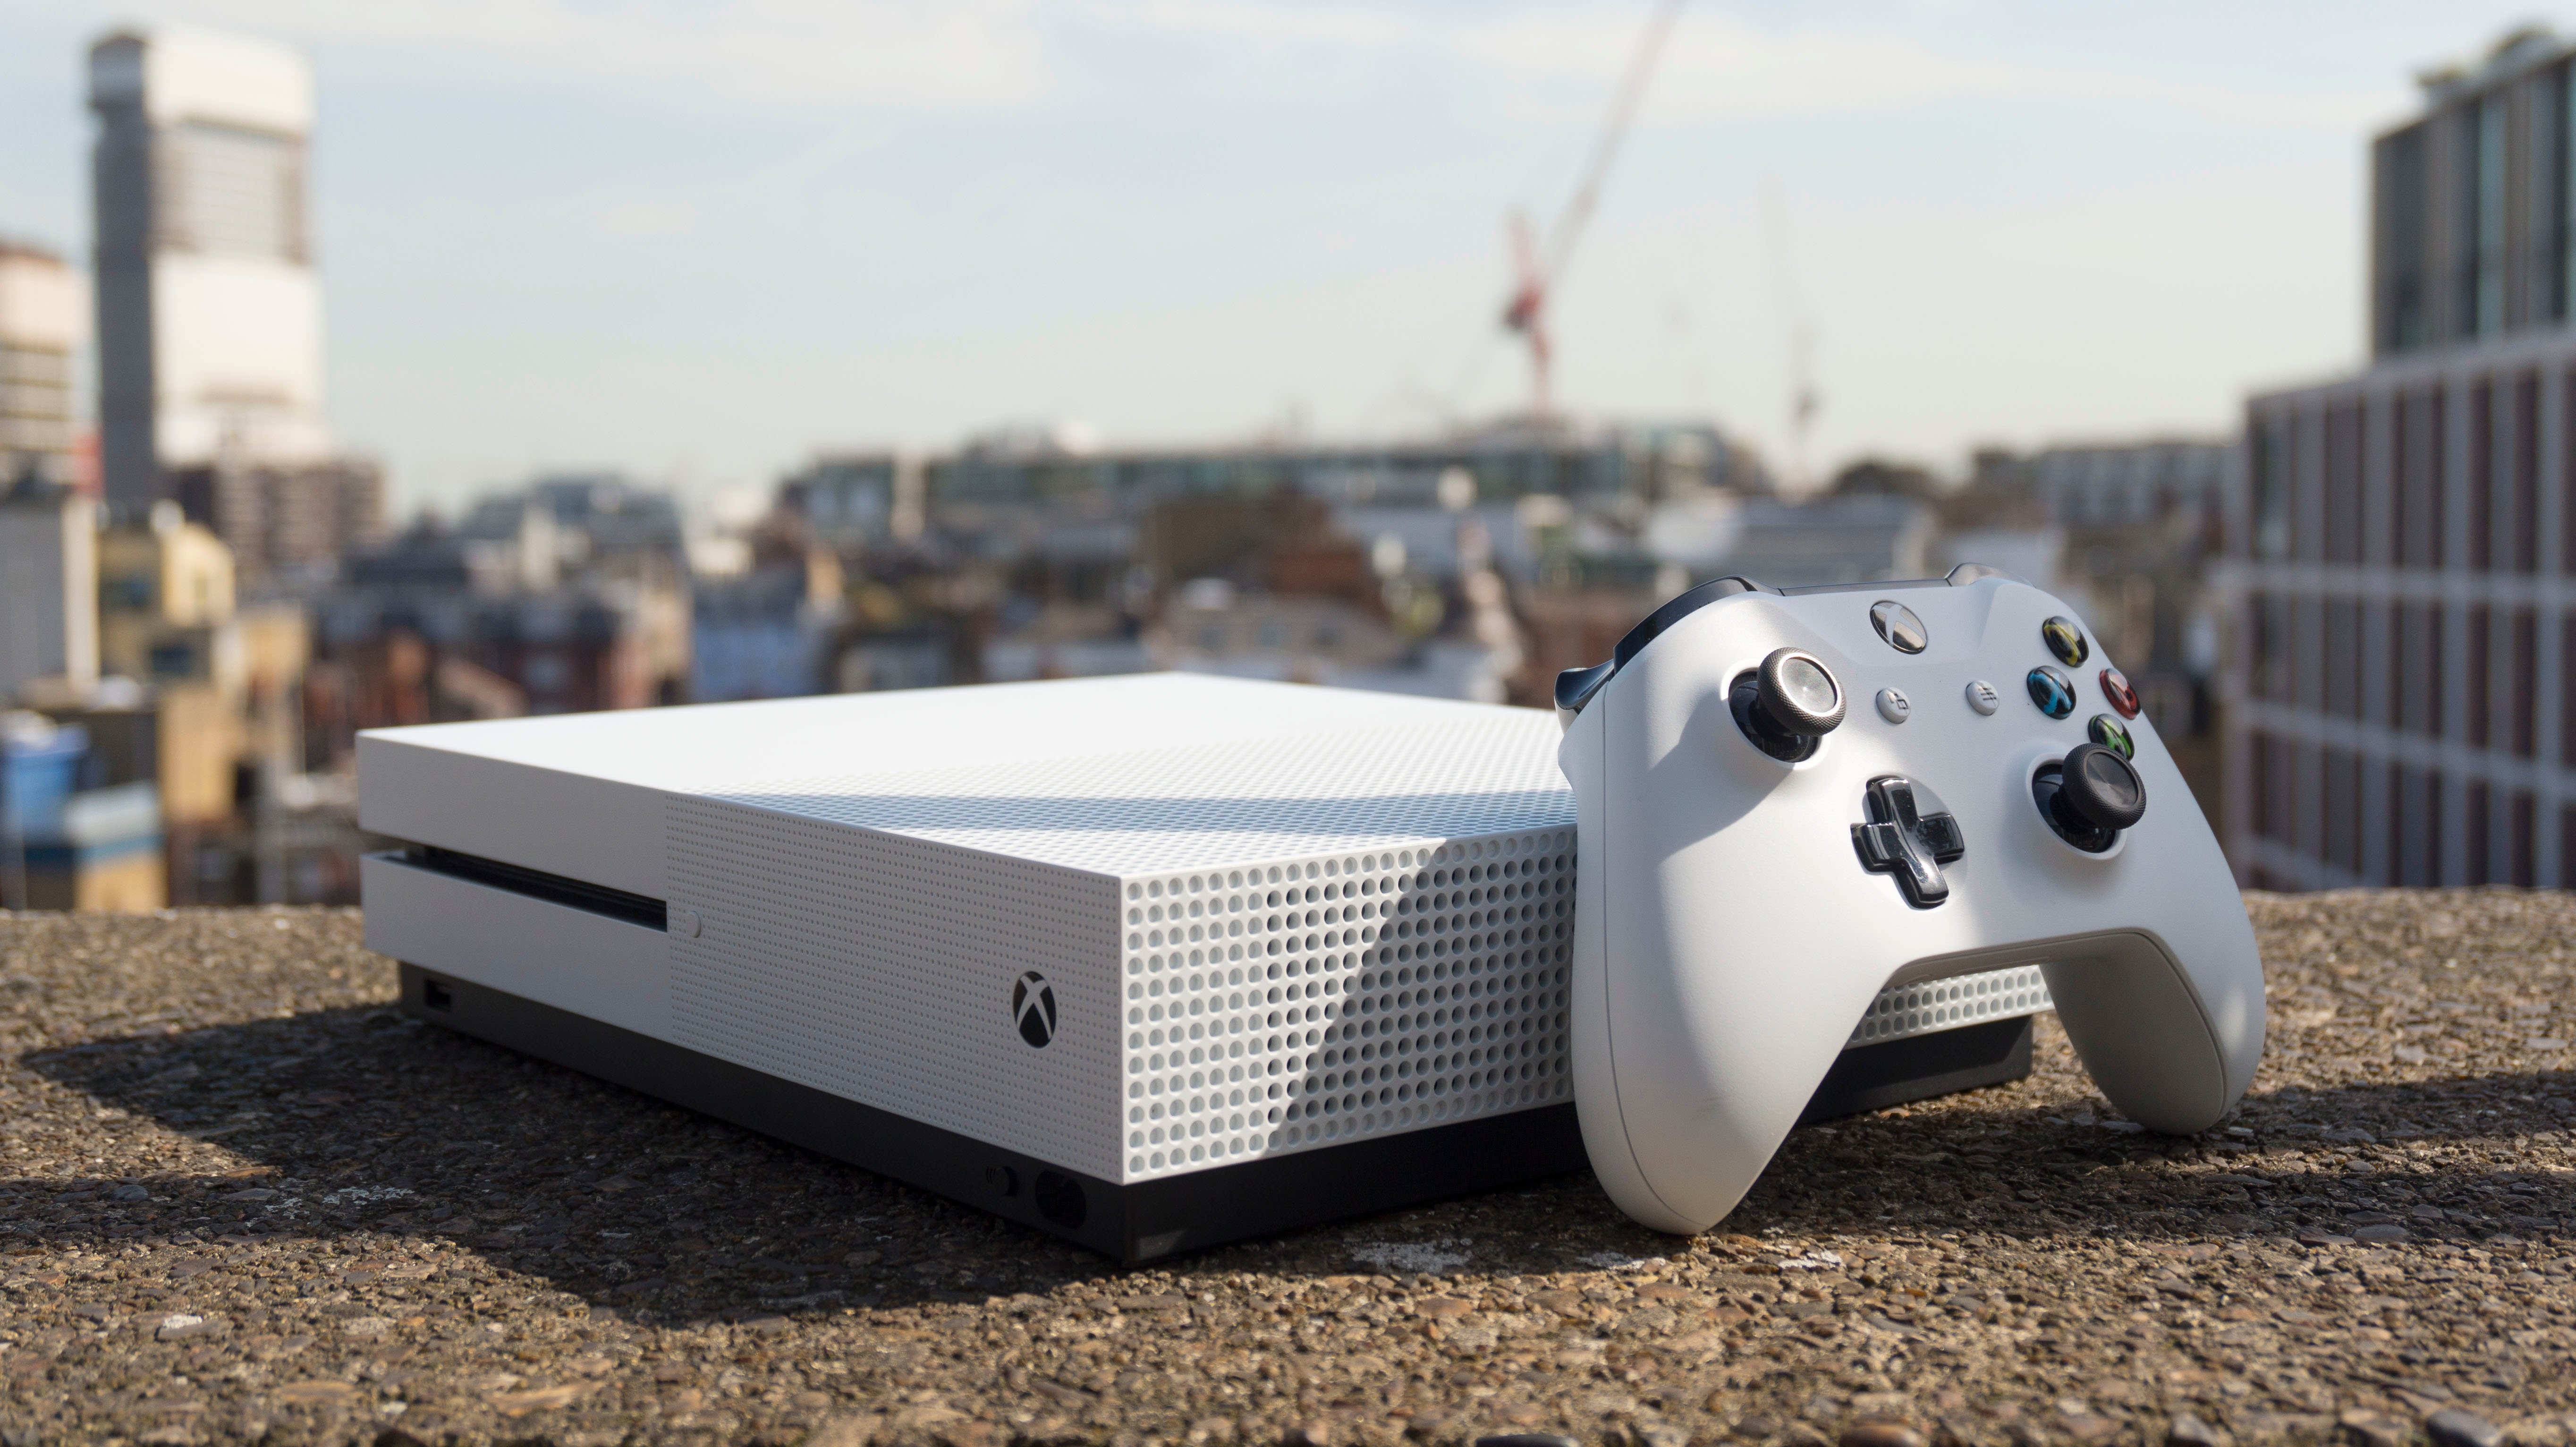 6fa71b645 Xbox One S review: Still the console to beat in 2018 | Expert Reviews